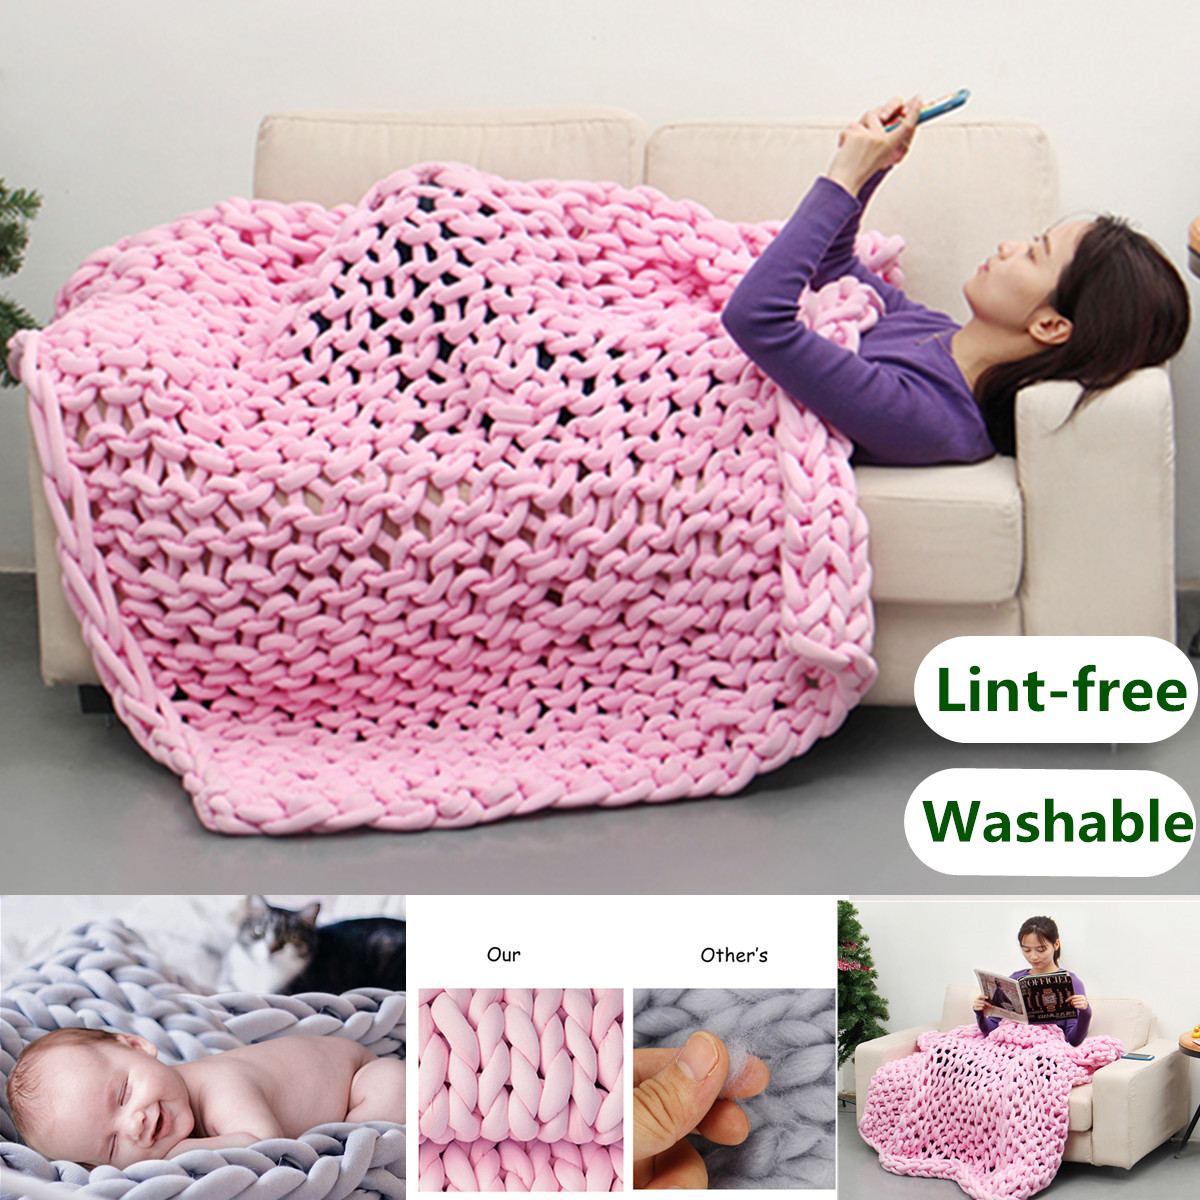 Machine Washable Hand-woven Knitting Bulky Warm Soft Lint-free Chunky Knit Bedding Blanket Thick Knitted Sofa Throw Rug - 3 Sizes